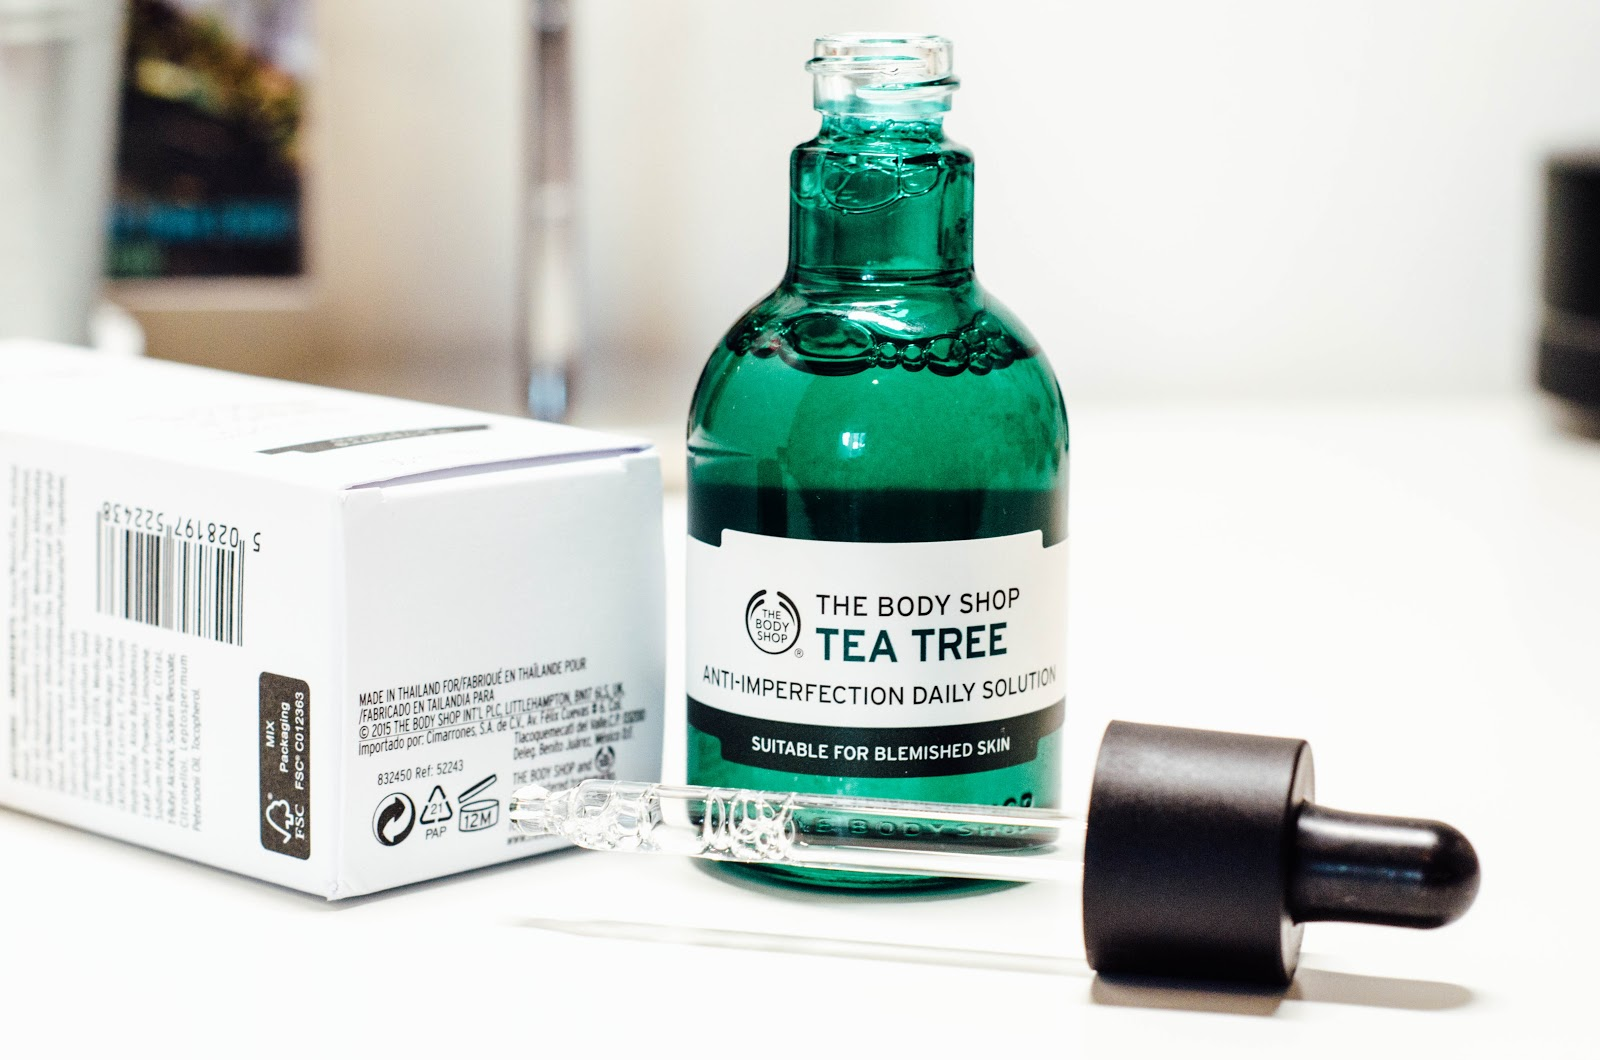 body shop tea tree daily solution review